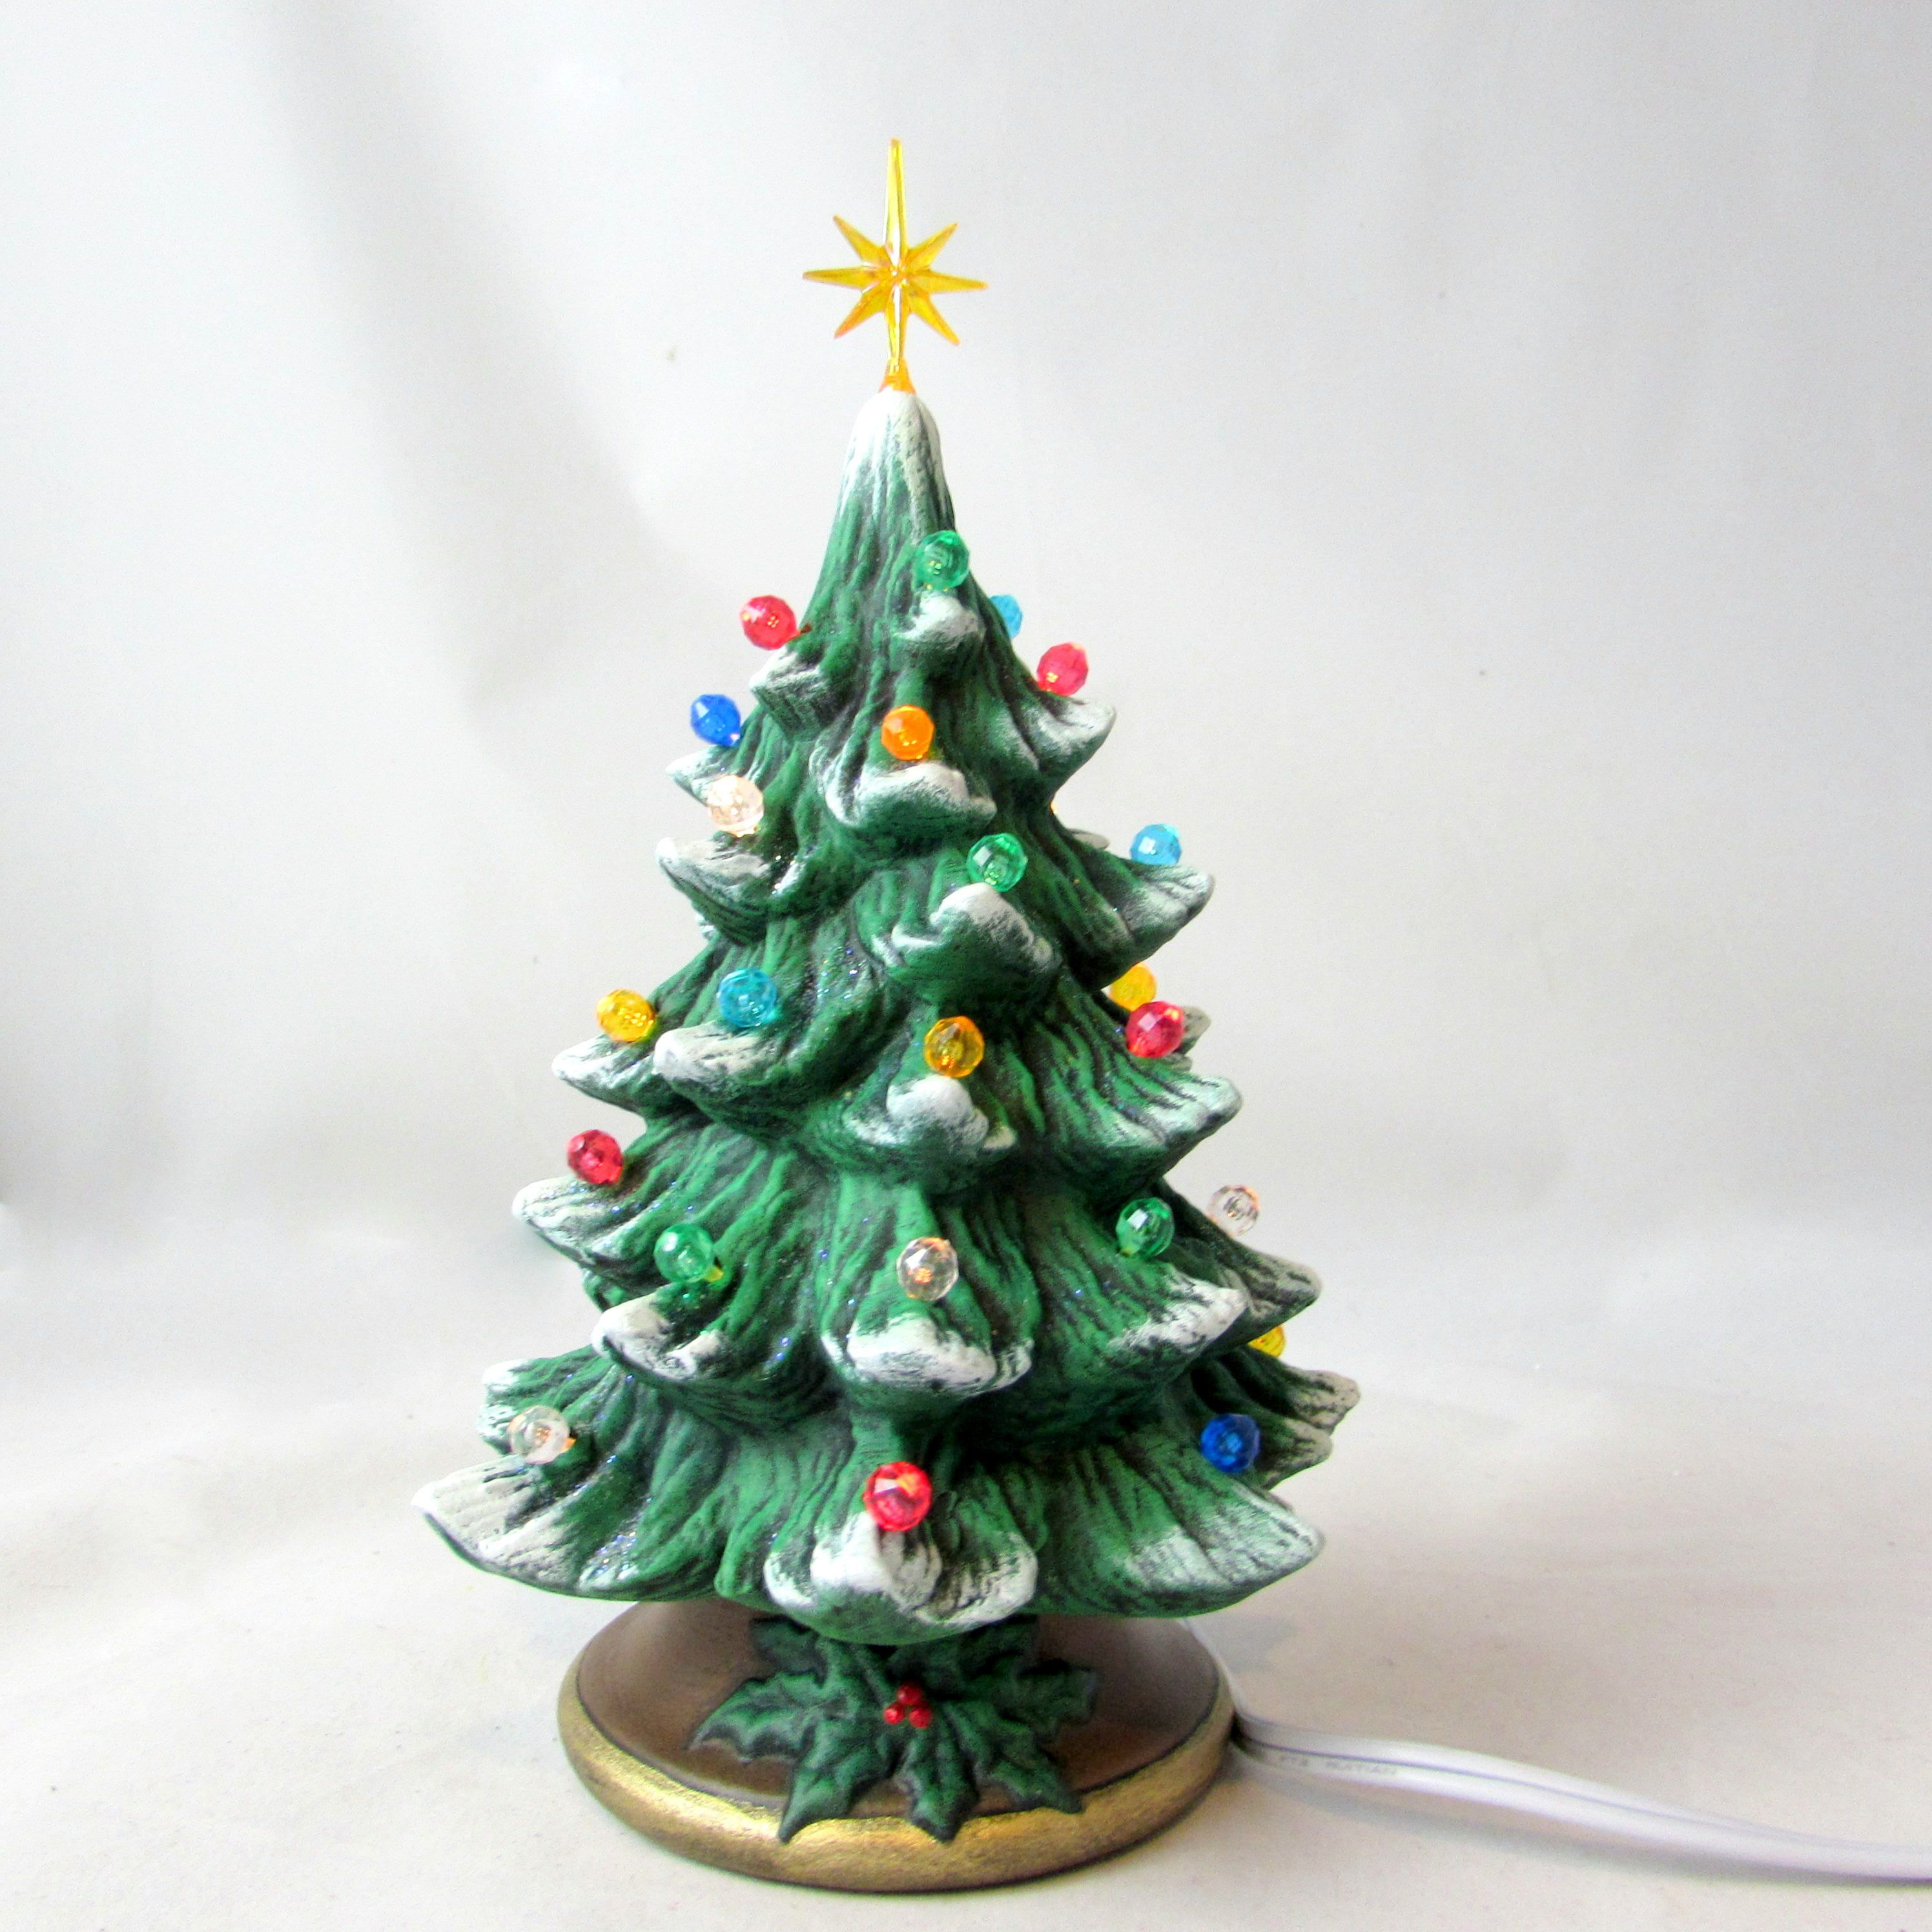 Small Ceramic Christmas Tree 7 Inches With Brown Base Hand Made Pine Tree With Light Kit Ceramic Christmas Trees Christmas Tree Ceramics